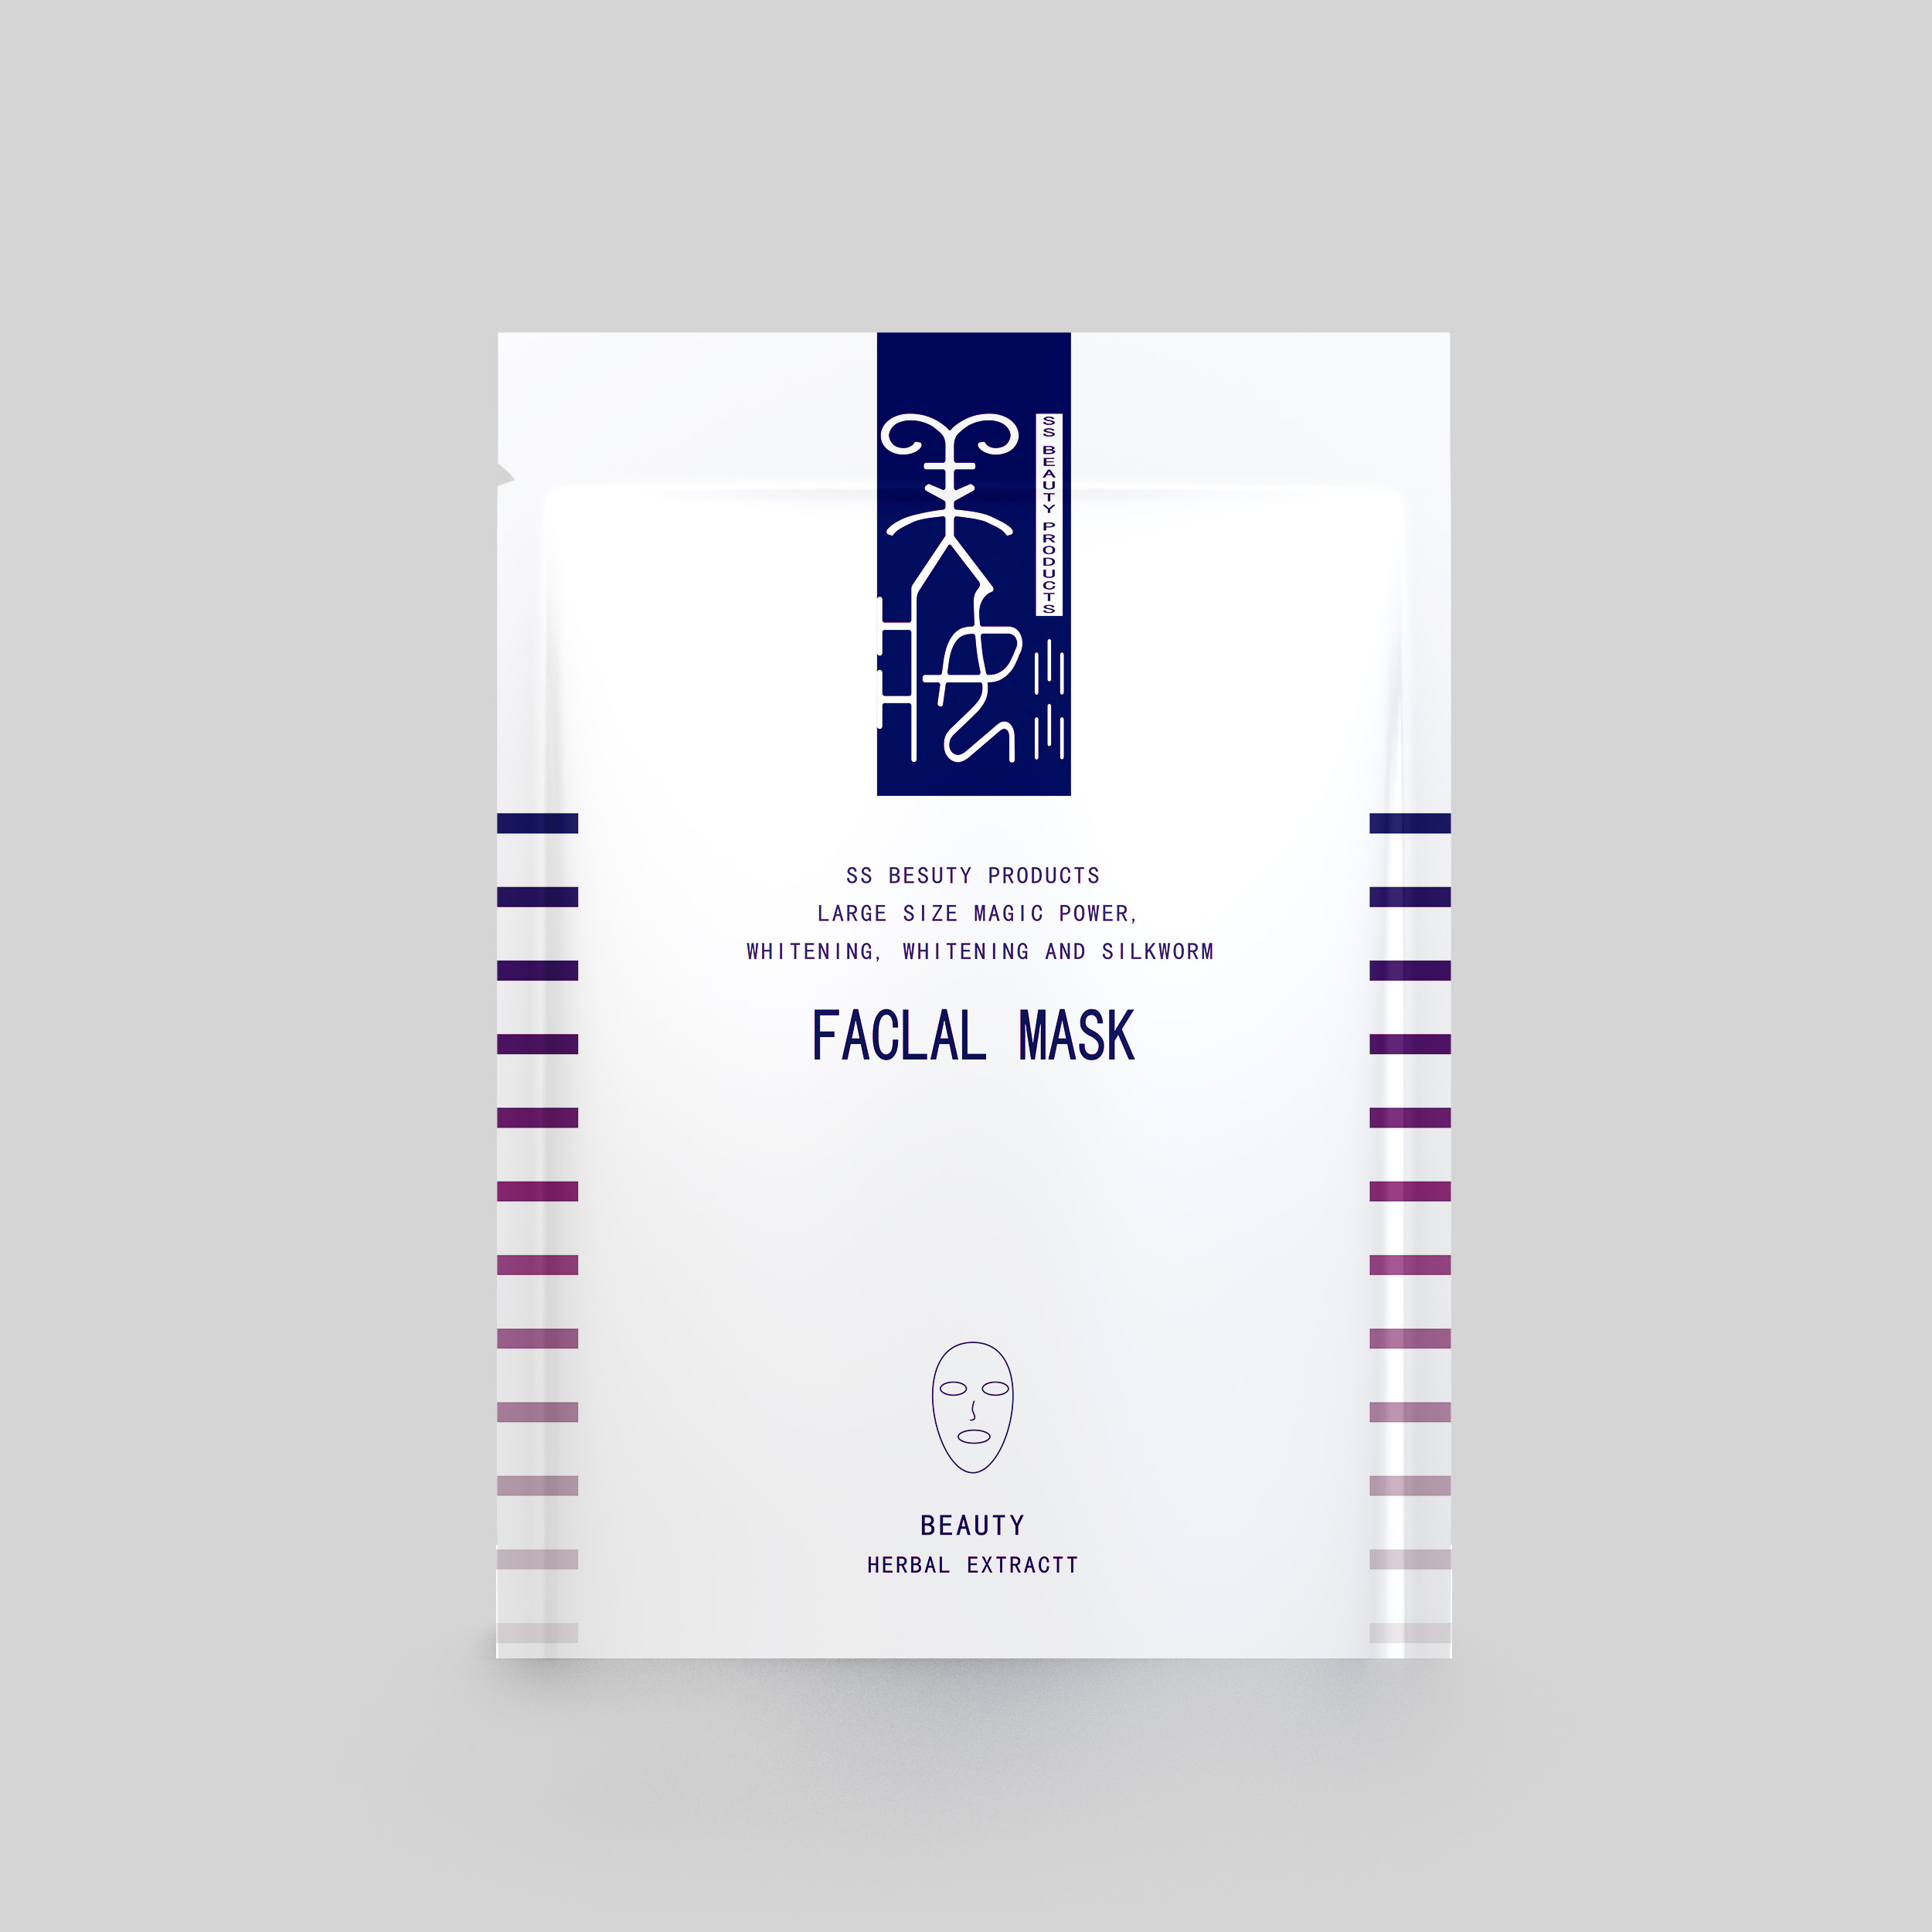 Yucai-Face Mask Packaging Facial Mask Packaging Bag With Plastic Cosmetic Packaging